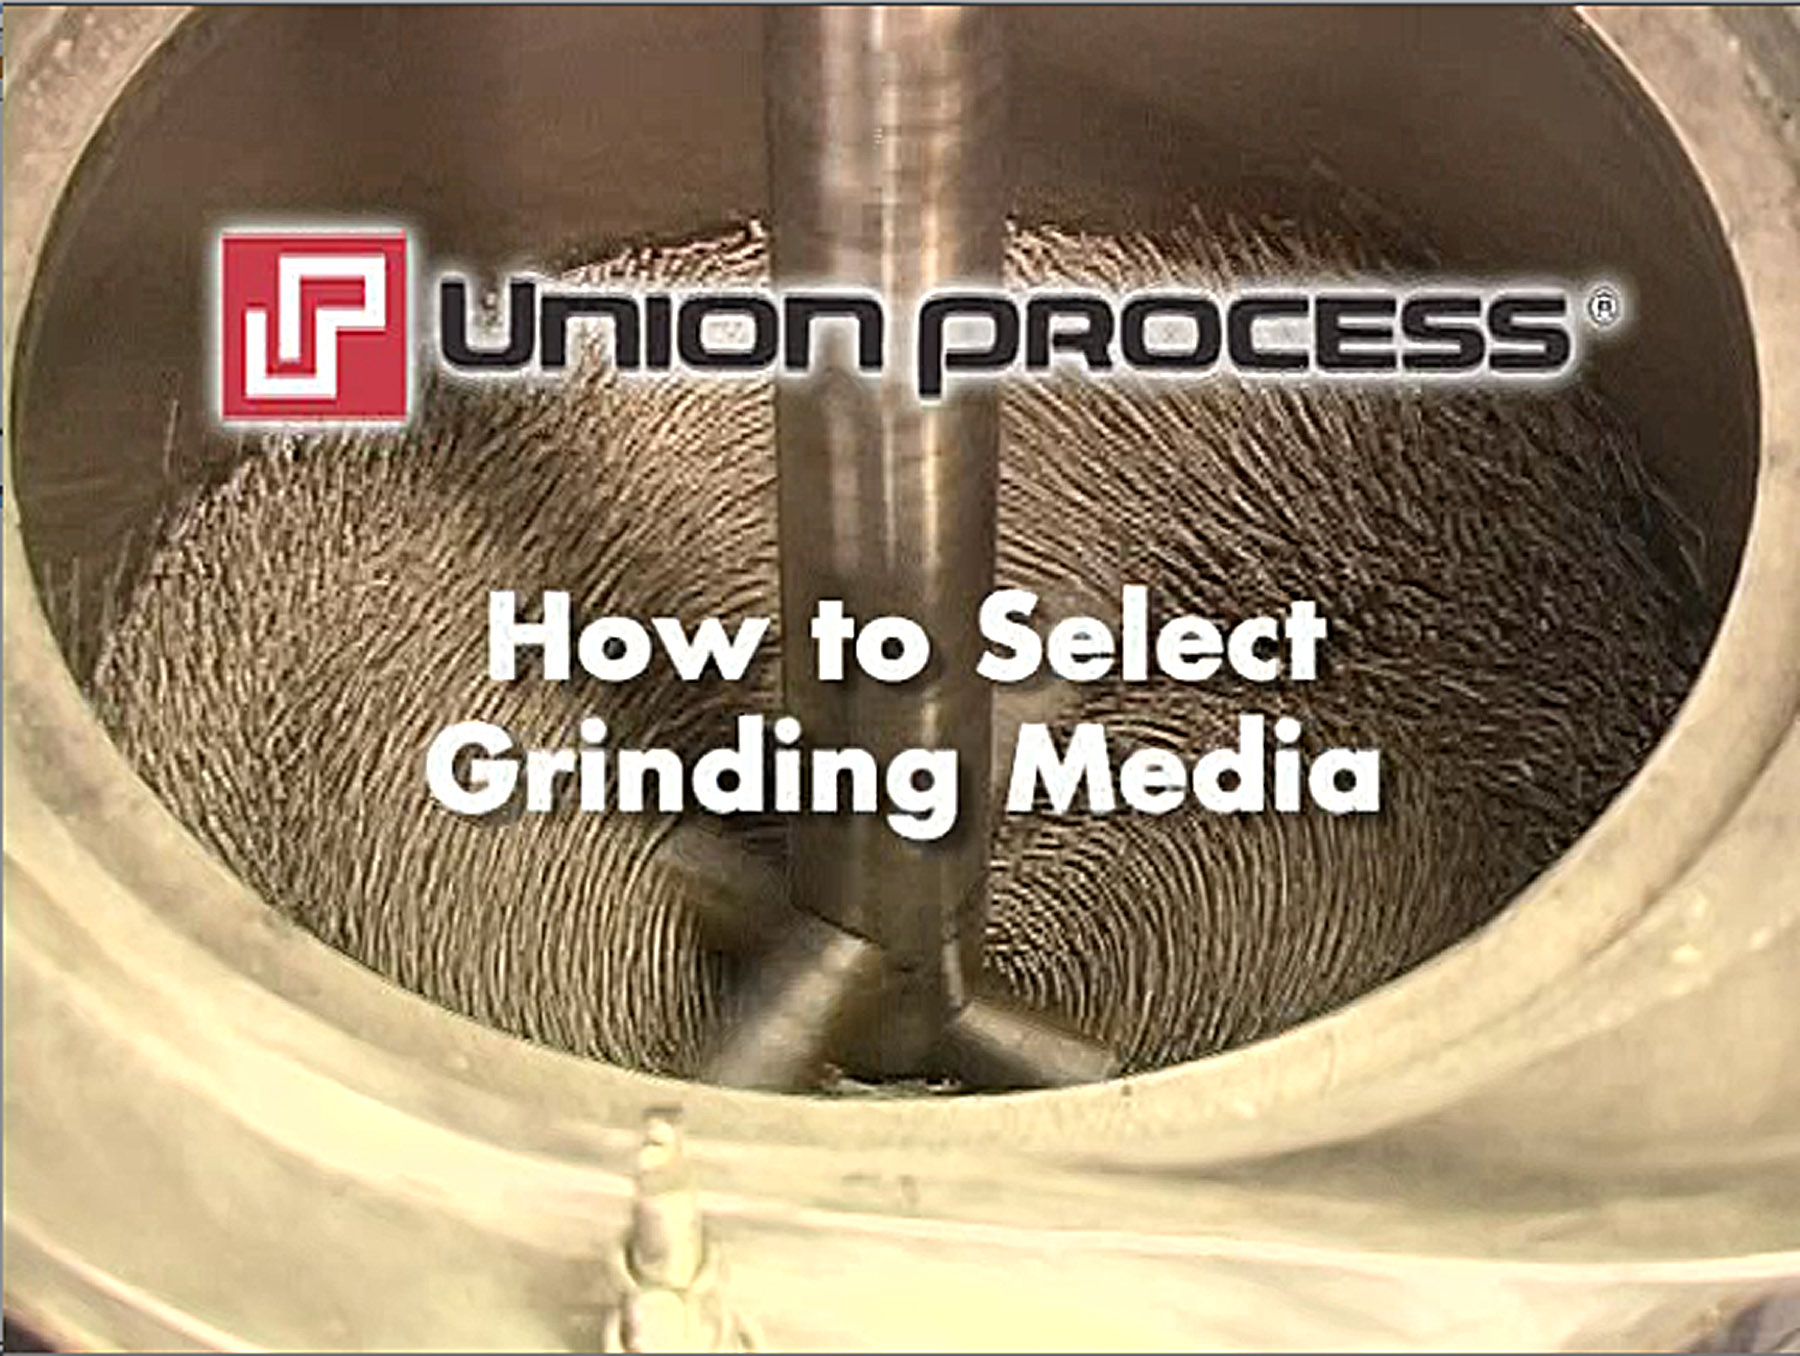 Union Process How to Select Grinding Media Video